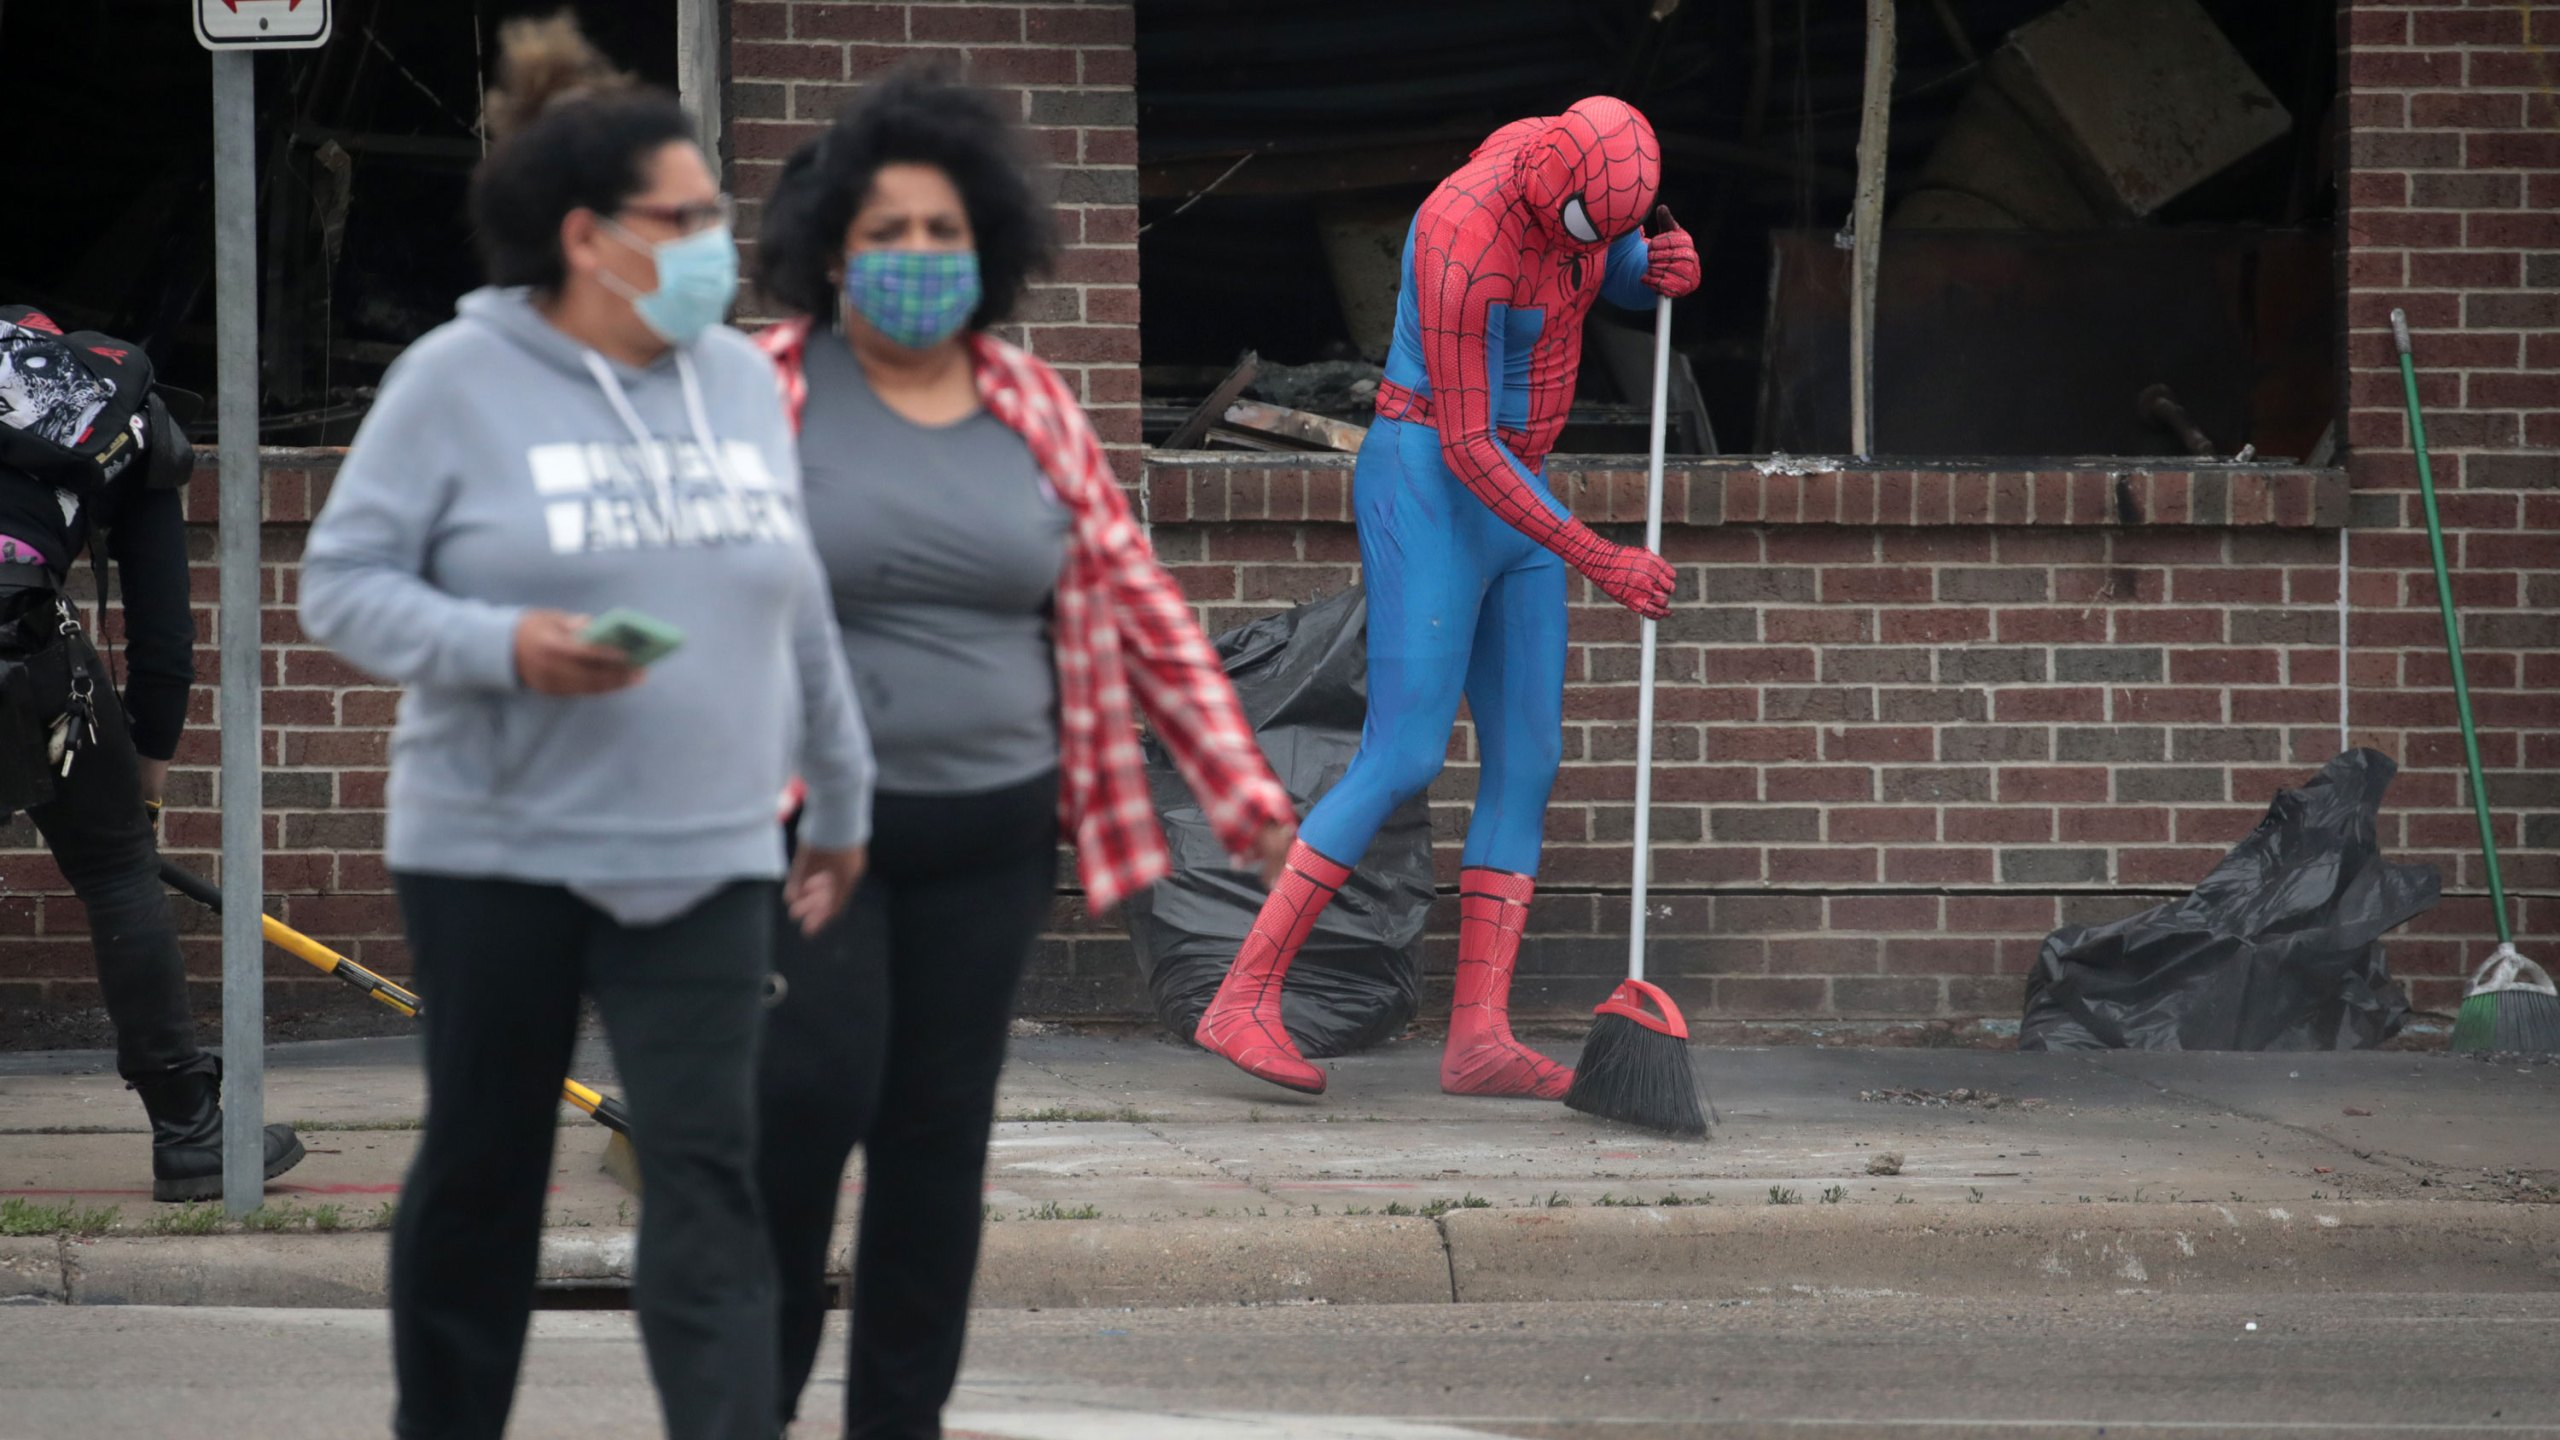 A person dressed as Spiderman sweeps the sidewalk picture